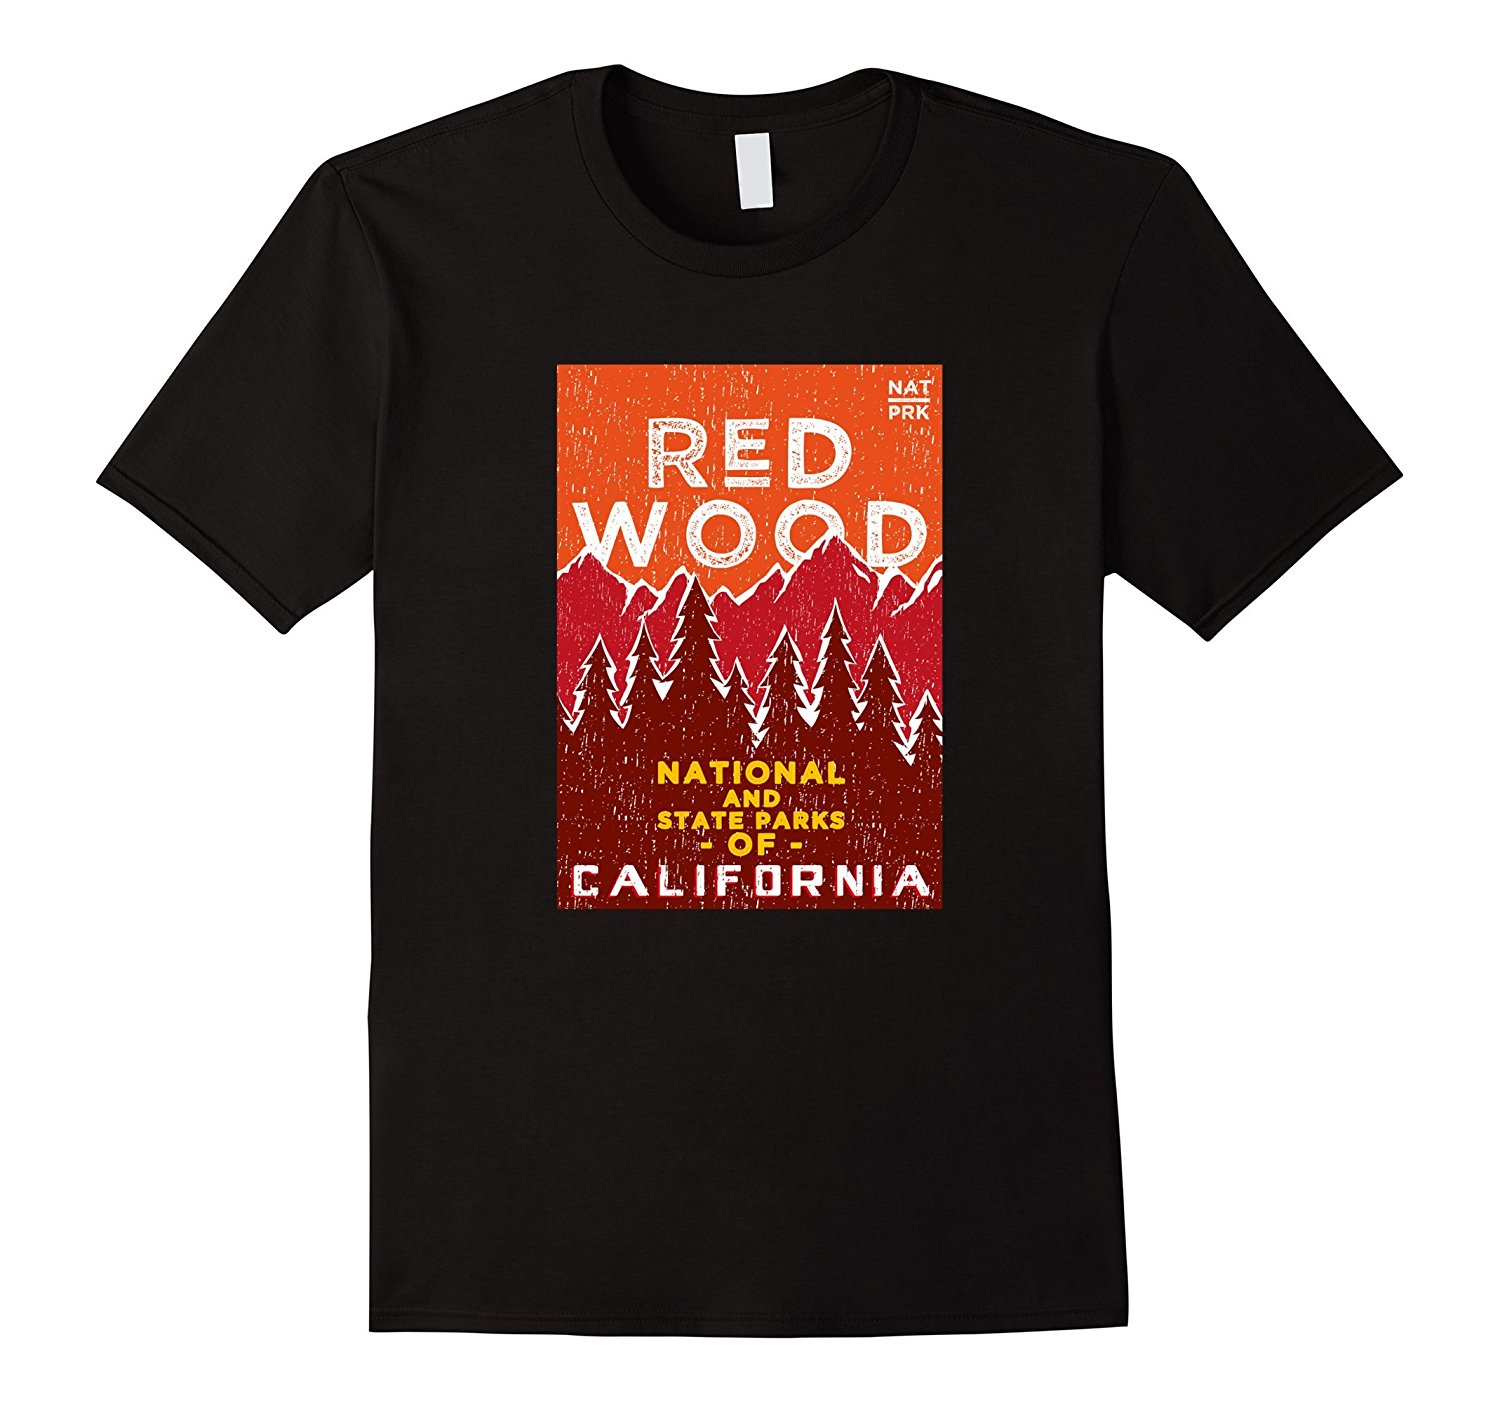 Design Tee Shirt Men's Short Sleeve Printing Machine O-Neck Red Wood - California National Park - Vintage style t shirt(China)